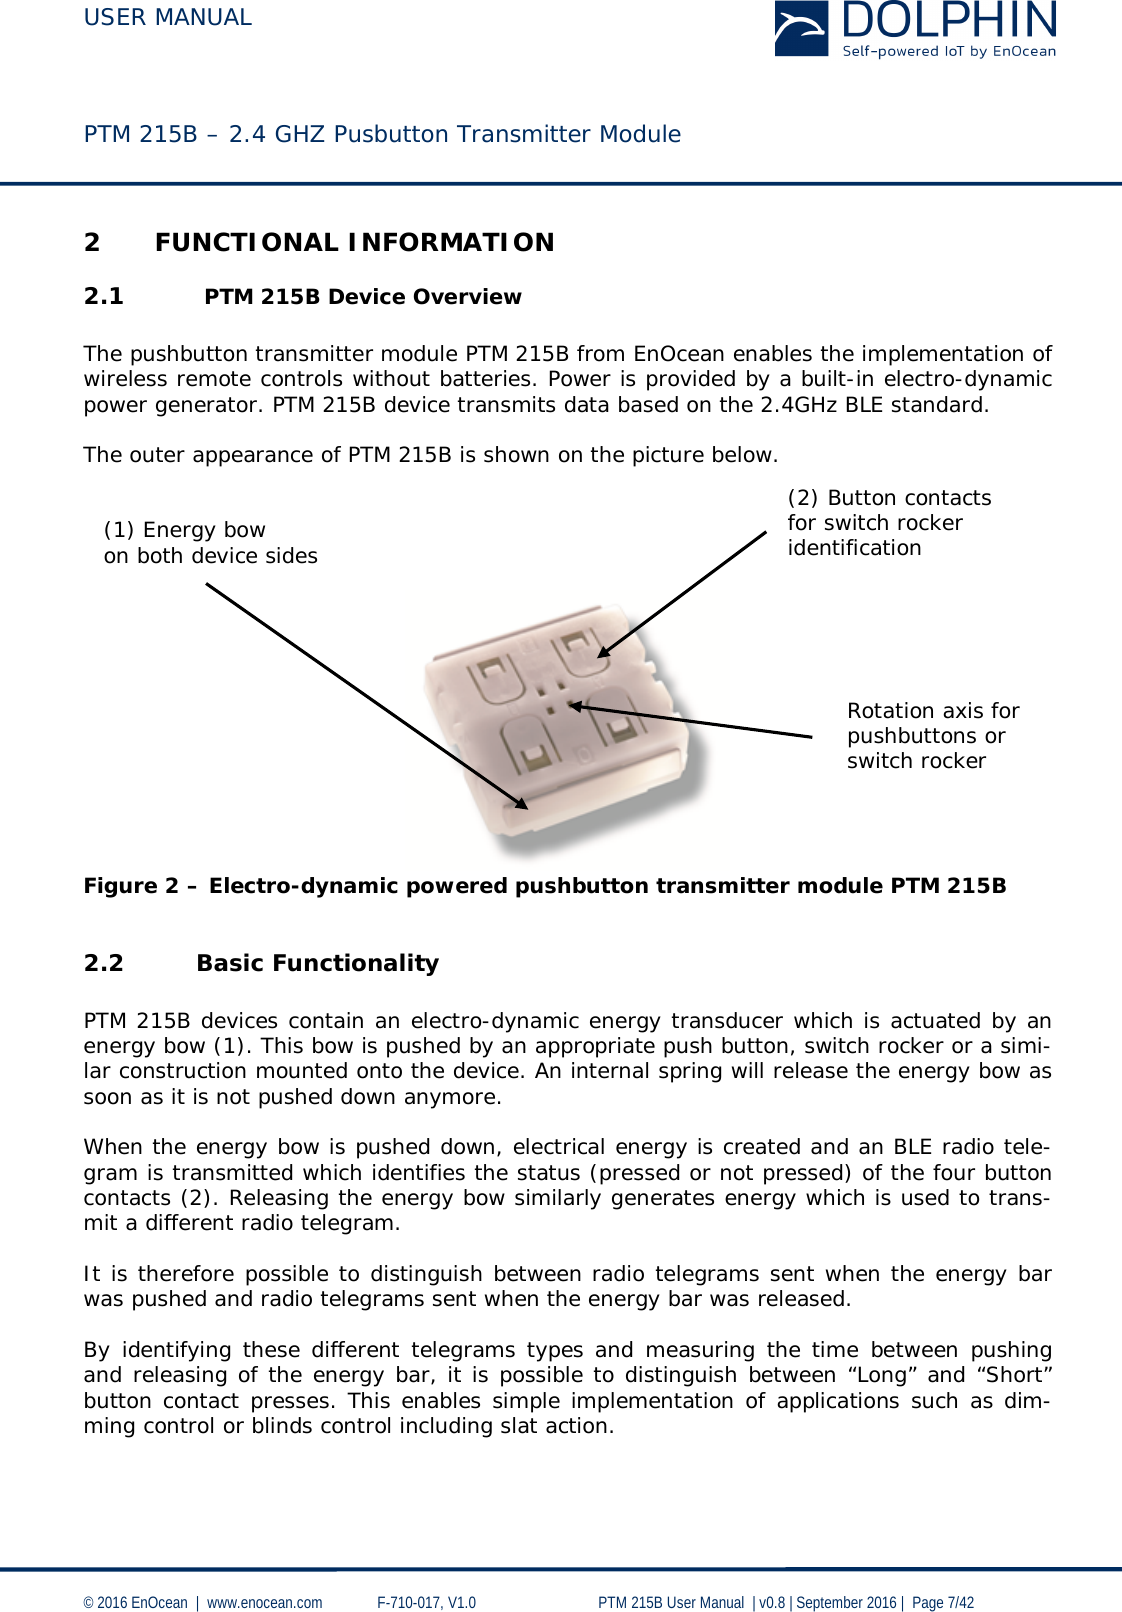 """USER MANUAL    PTM 215B – 2.4 GHZ Pusbutton Transmitter Module  © 2016 EnOcean     www.enocean.com   F-710-017, V1.0        PTM 215B User Manual    v0.8   September 2016    Page 7/42  2 FUNCTIONAL INFORMATION 2.1  PTM 215B Device Overview  The pushbutton transmitter module PTM 215B from EnOcean enables the implementation of wireless remote controls without batteries. Power is provided by a built-in electro-dynamic power generator. PTM 215B device transmits data based on the 2.4GHz BLE standard.   The outer appearance of PTM 215B is shown on the picture below.                 Figure 2 – Electro-dynamic powered pushbutton transmitter module PTM 215B  2.2 Basic Functionality  PTM 215B devices contain an electro-dynamic energy transducer which is actuated by an energy bow (1). This bow is pushed by an appropriate push button, switch rocker or a simi-lar construction mounted onto the device. An internal spring will release the energy bow as soon as it is not pushed down anymore.   When the energy bow is pushed down, electrical energy is created and an BLE radio tele-gram is transmitted which identifies the status (pressed or not pressed) of the four button contacts (2). Releasing the energy bow similarly generates energy which is used to trans-mit a different radio telegram.   It is therefore possible to distinguish between radio telegrams sent when the energy bar was pushed and radio telegrams sent when the energy bar was released.  By identifying these different telegrams types and measuring the time between pushing and releasing of the energy bar, it is possible to distinguish between """"Long"""" and """"Short"""" button contact presses. This enables simple implementation of applications such as dim-ming control or blinds control including slat action.  (2) Button contacts for switch rocker identification (1) Energy bow  on both device sides Rotation axis for  pushbuttons or  switch rocker"""